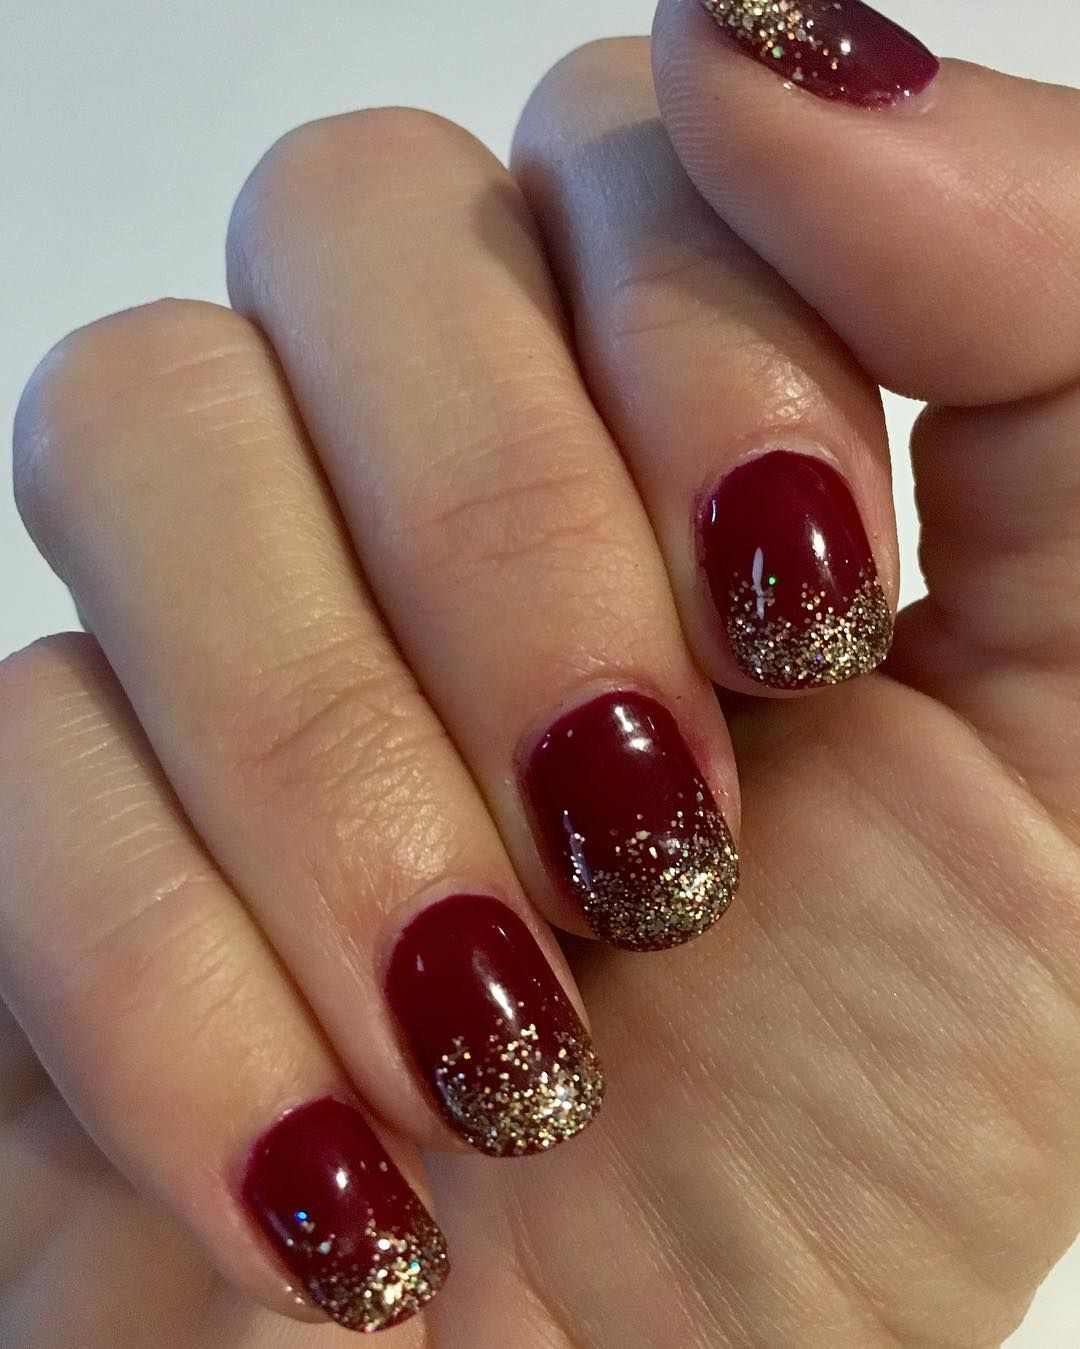 nonugly holiday nail designs youull actually want to copy